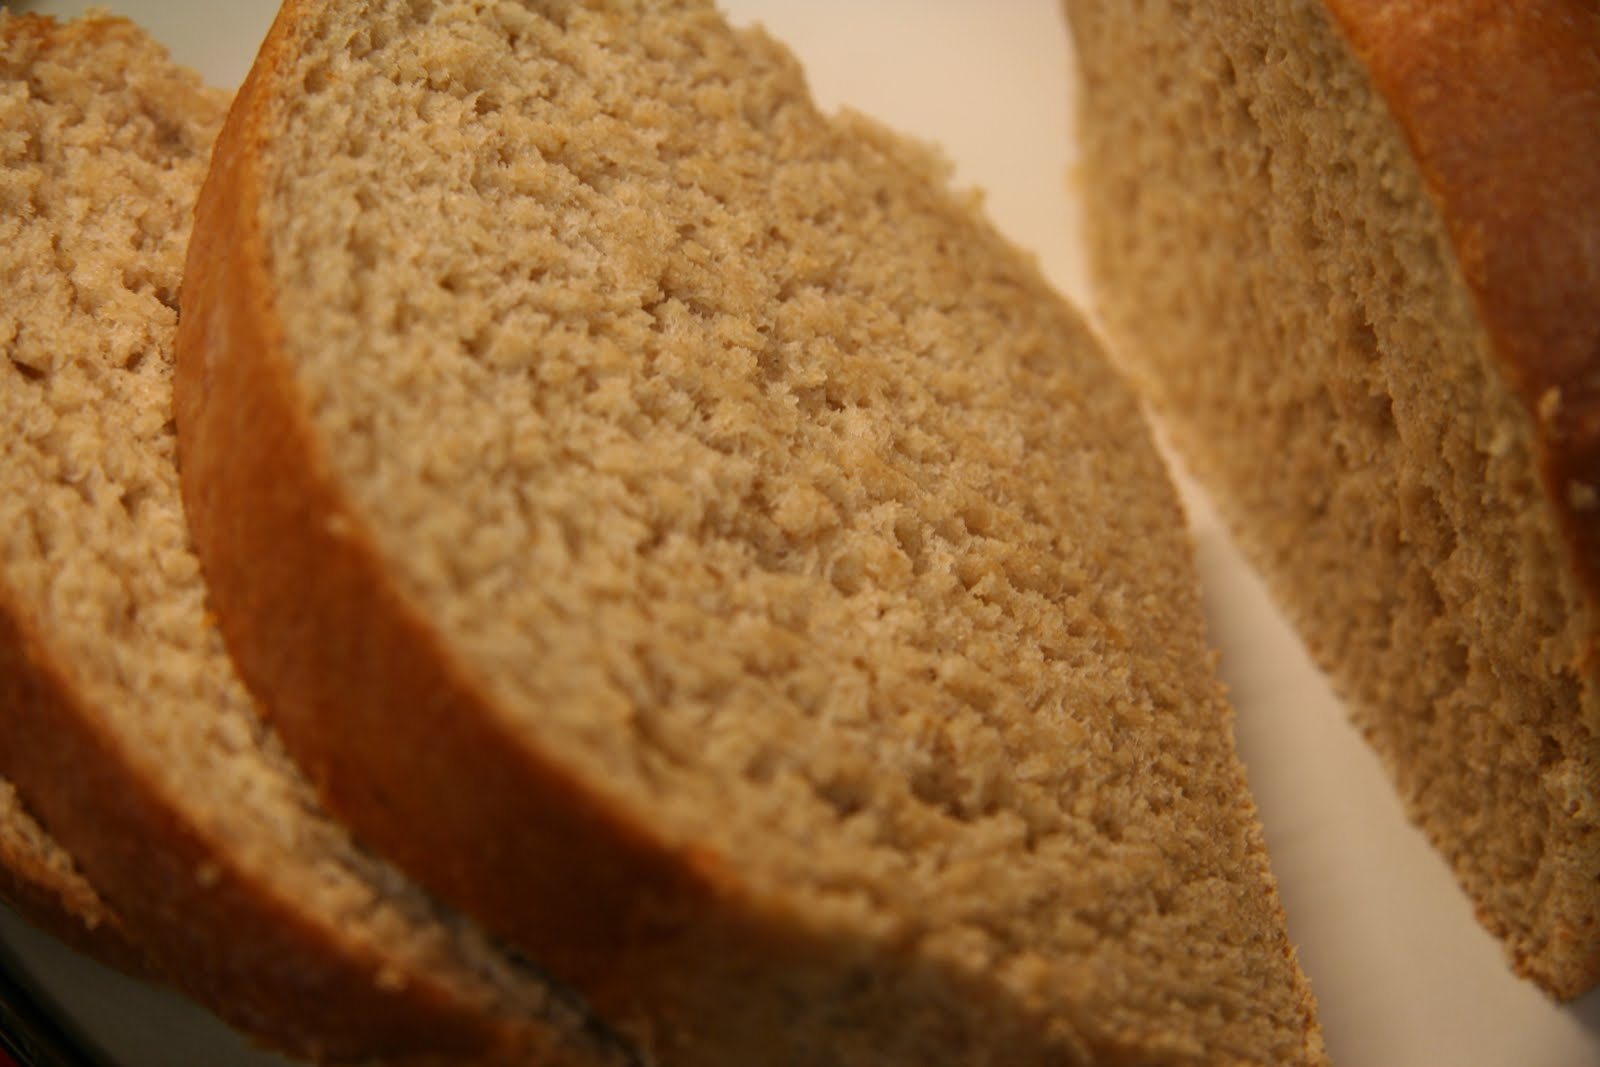 Kneady Sweetie: Yummy Whole Wheat Bread